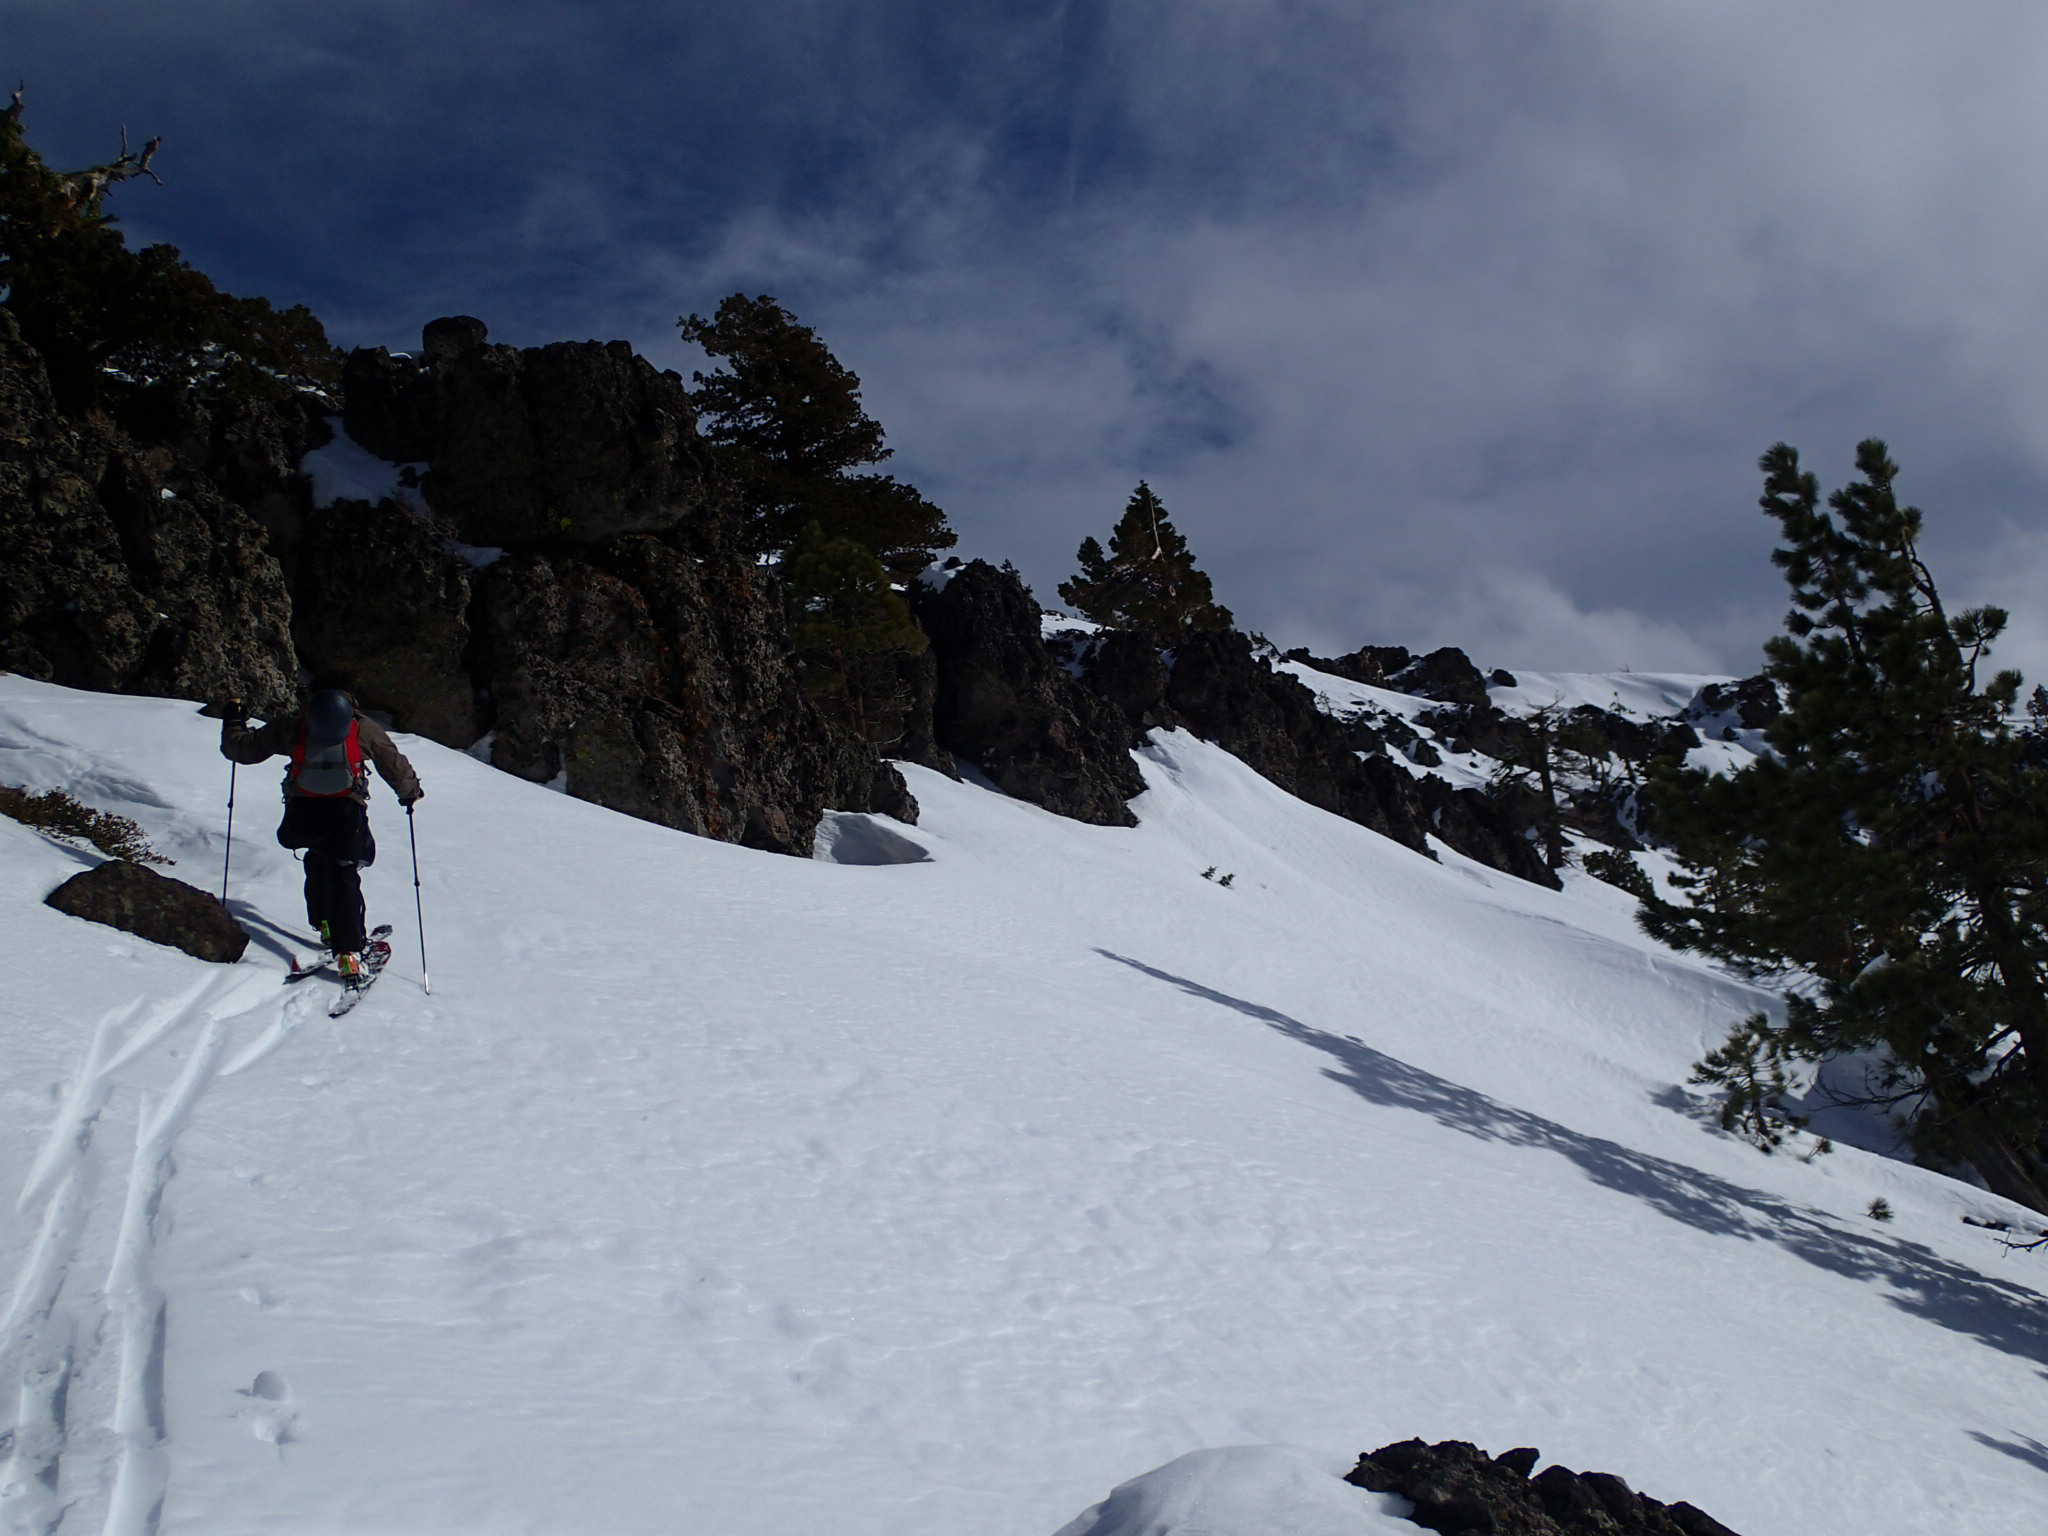 Finding a way to the top of the ridge line